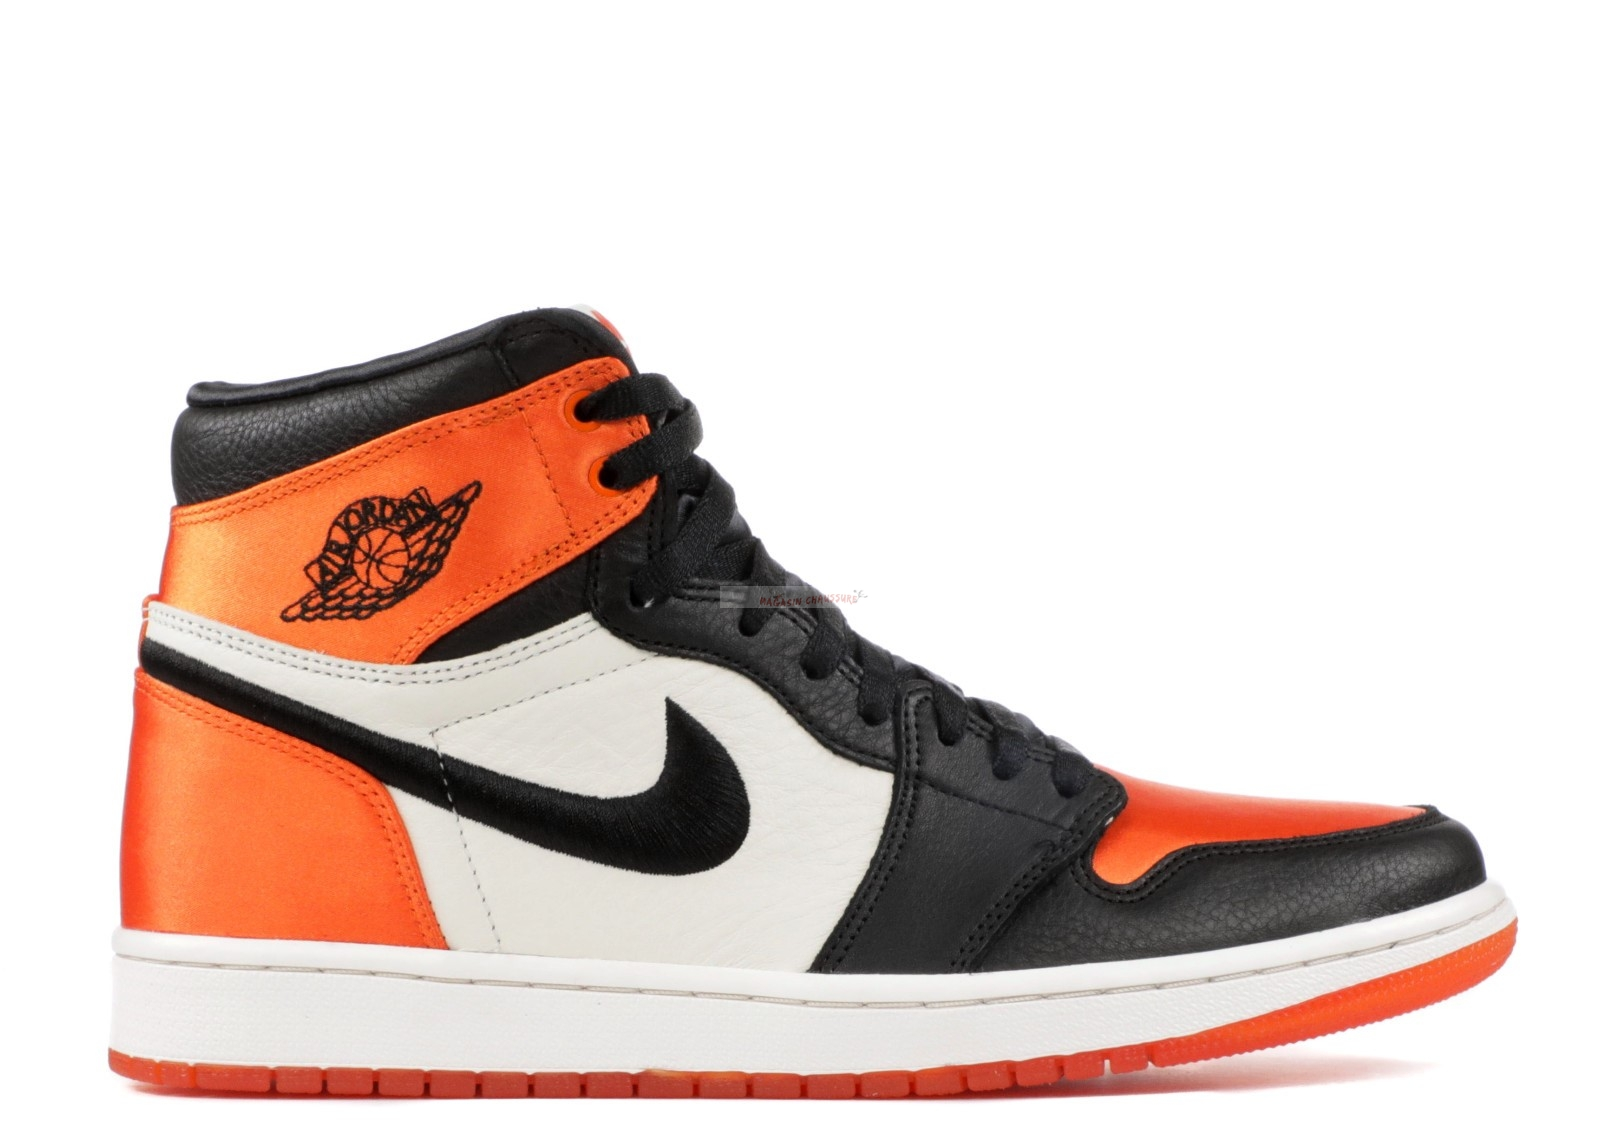 "Air Jordan 1 - Femme Re High Og Sl ""Satin Shattered Backboard"" Noir Orange (av3725-010) Chaussure de Basket"